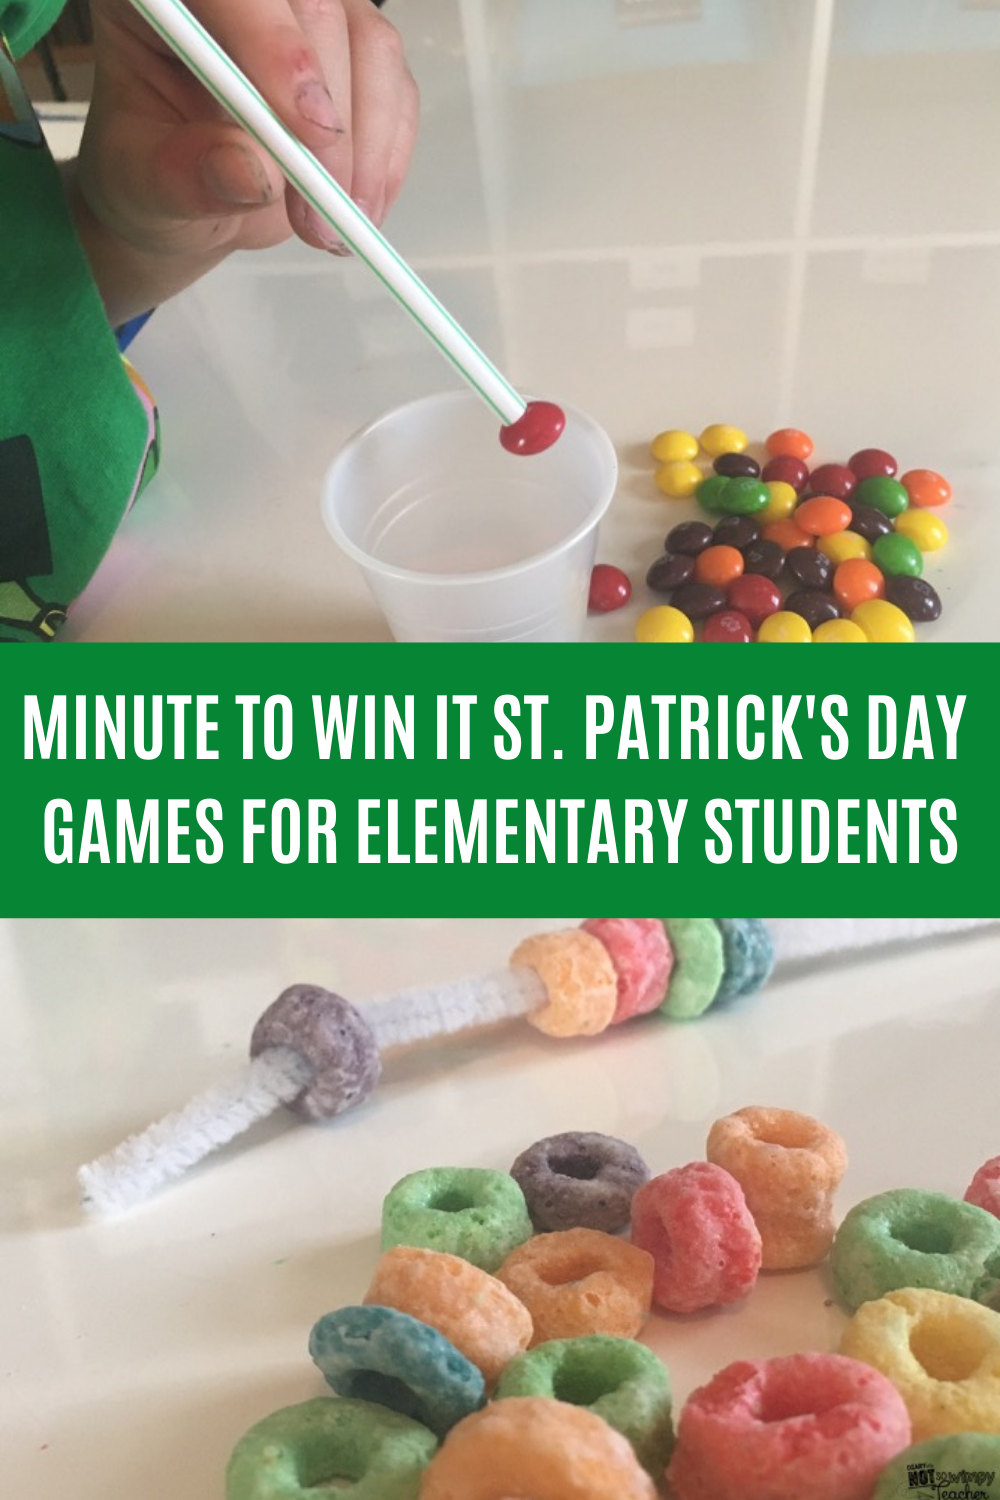 Min to Win It St. Patricks Day Games for Elementary Students Classroom Games